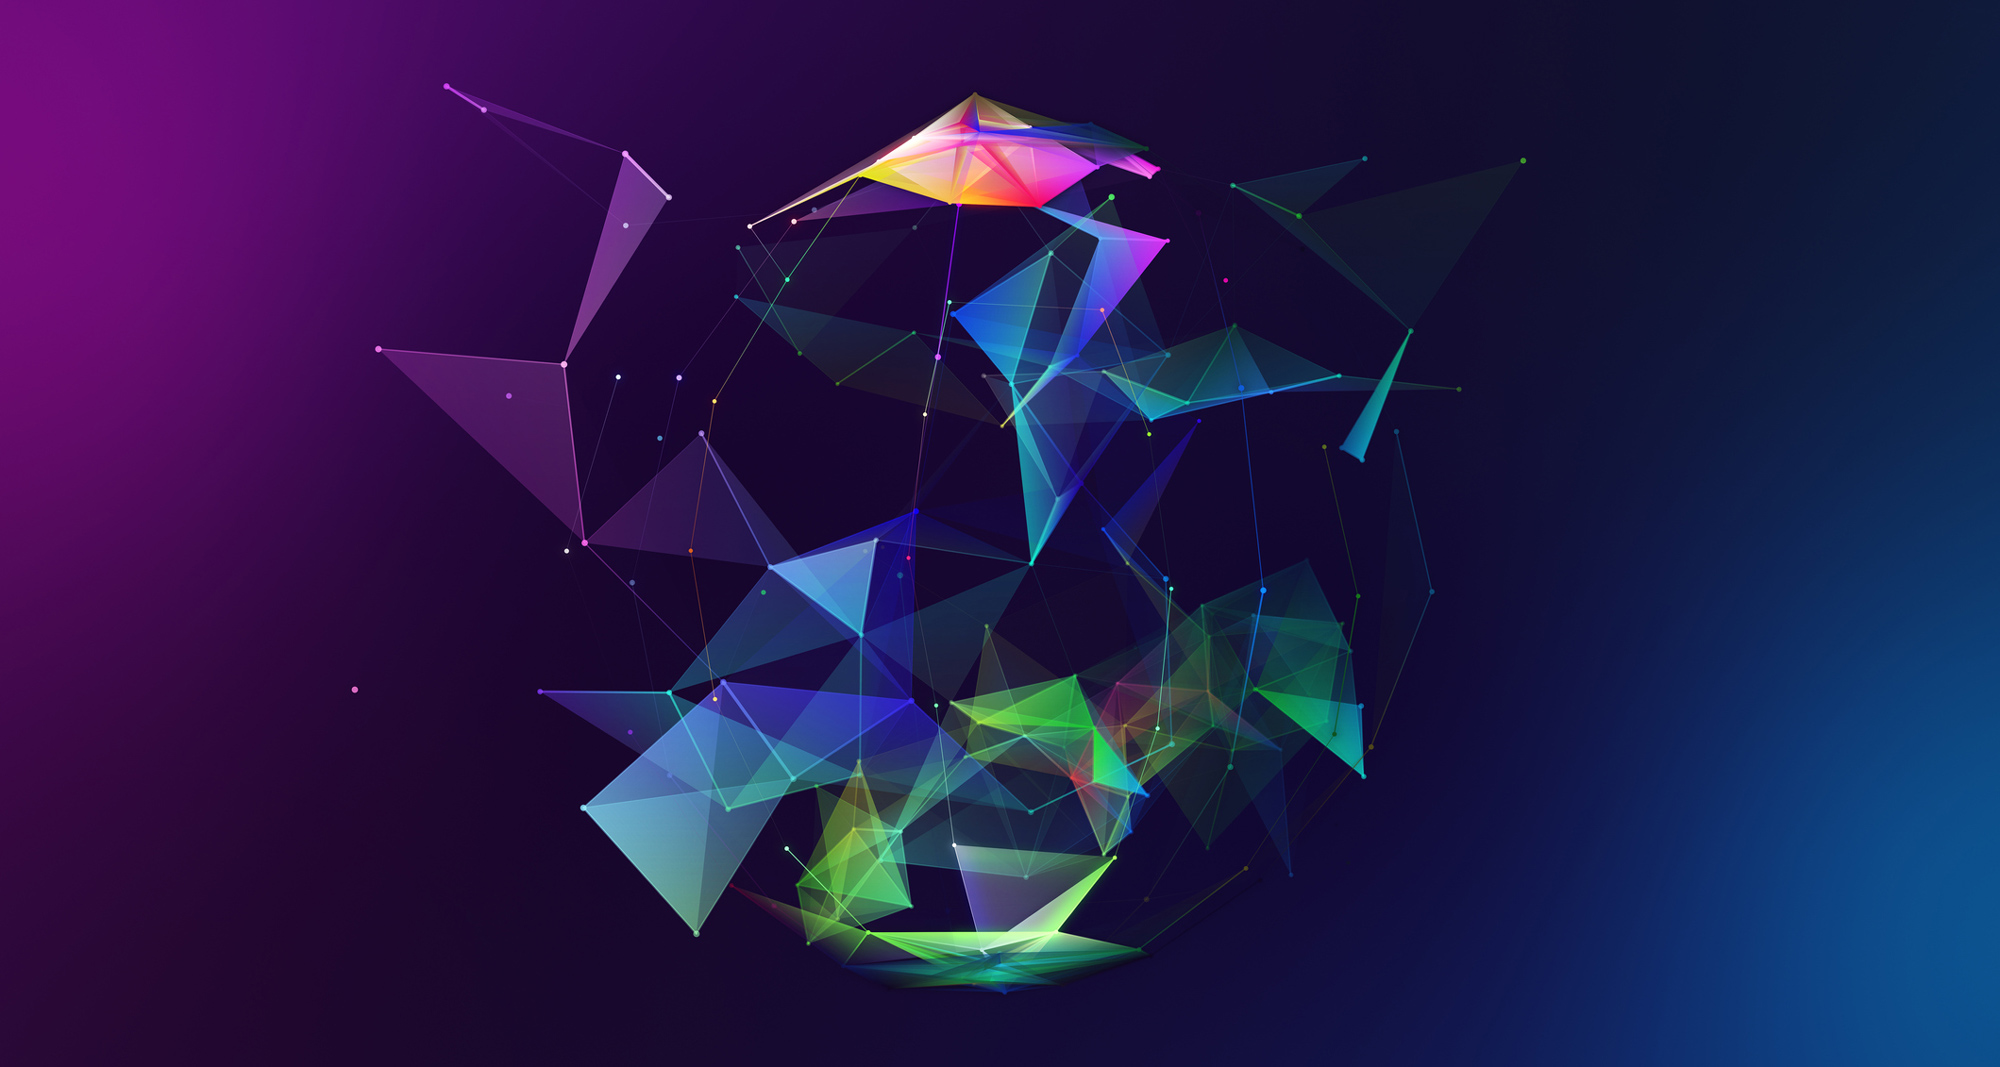 Abstract image of shapes - iStock image